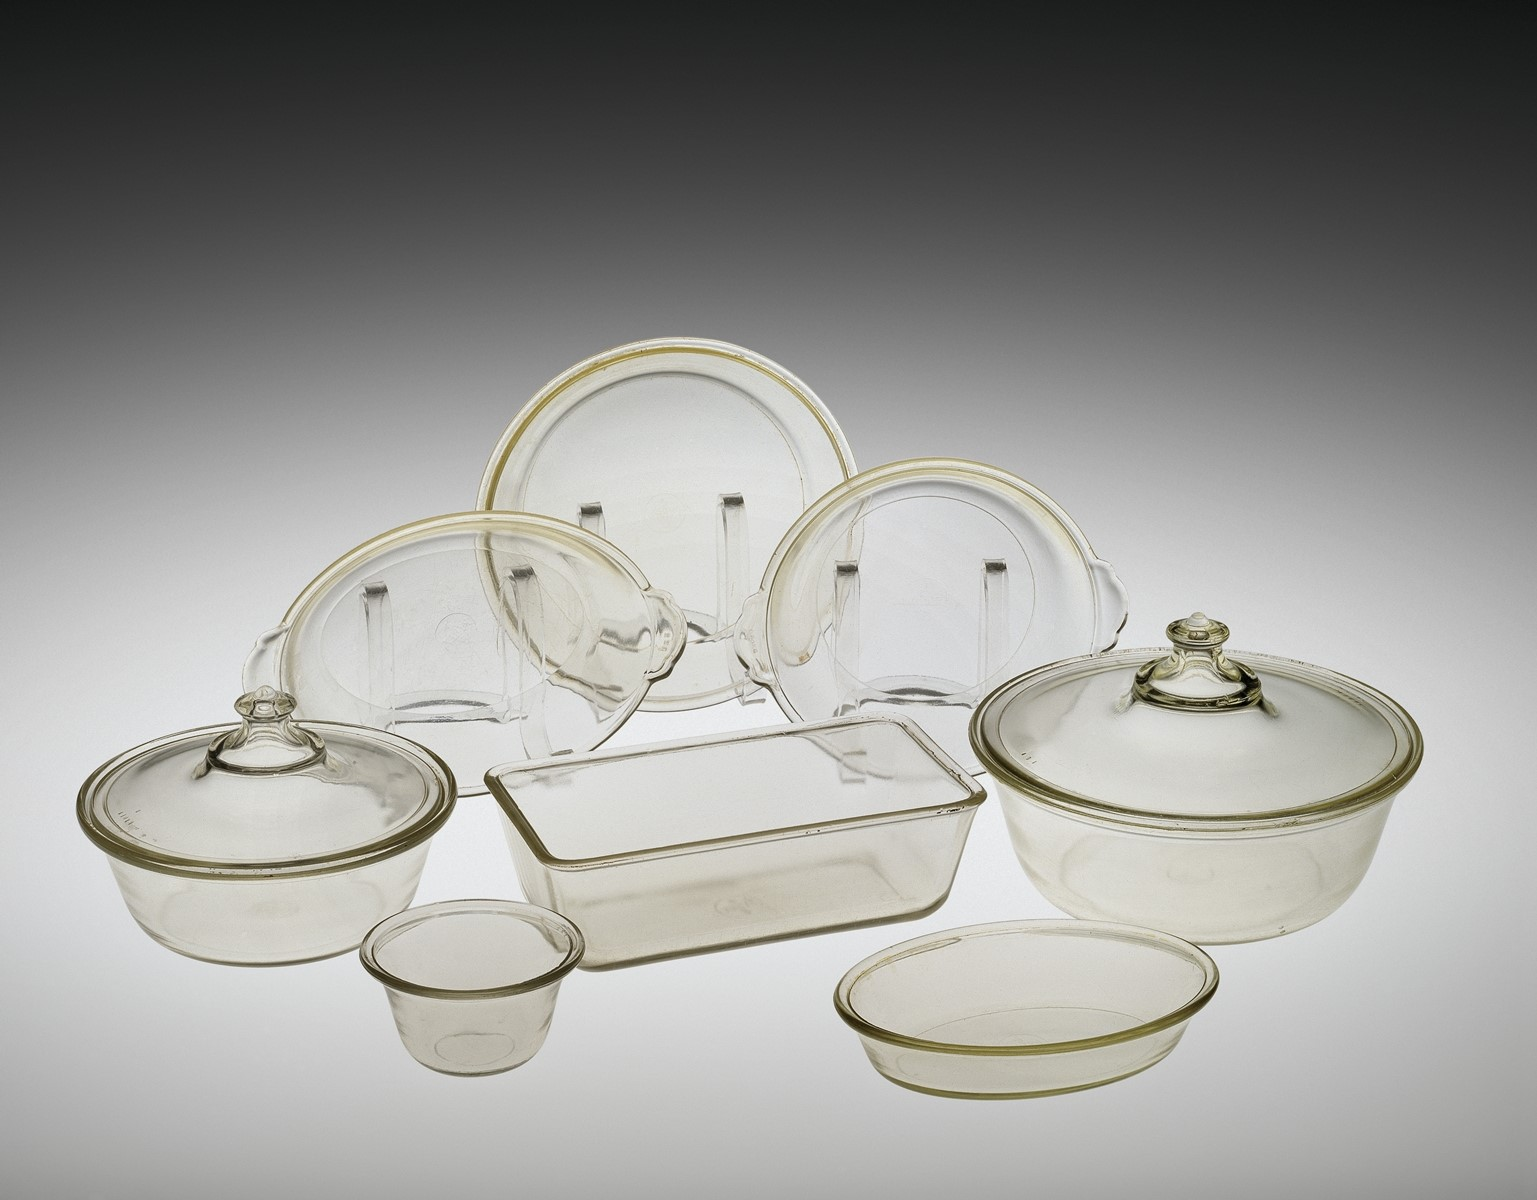 Eight Of The First Twelve Pieces Pyrex Brand Ovenware 2 Covered Casseroles 101 And 103 Loaf Pan 212 Pie Plate 202 Shirred Egg Dish 301